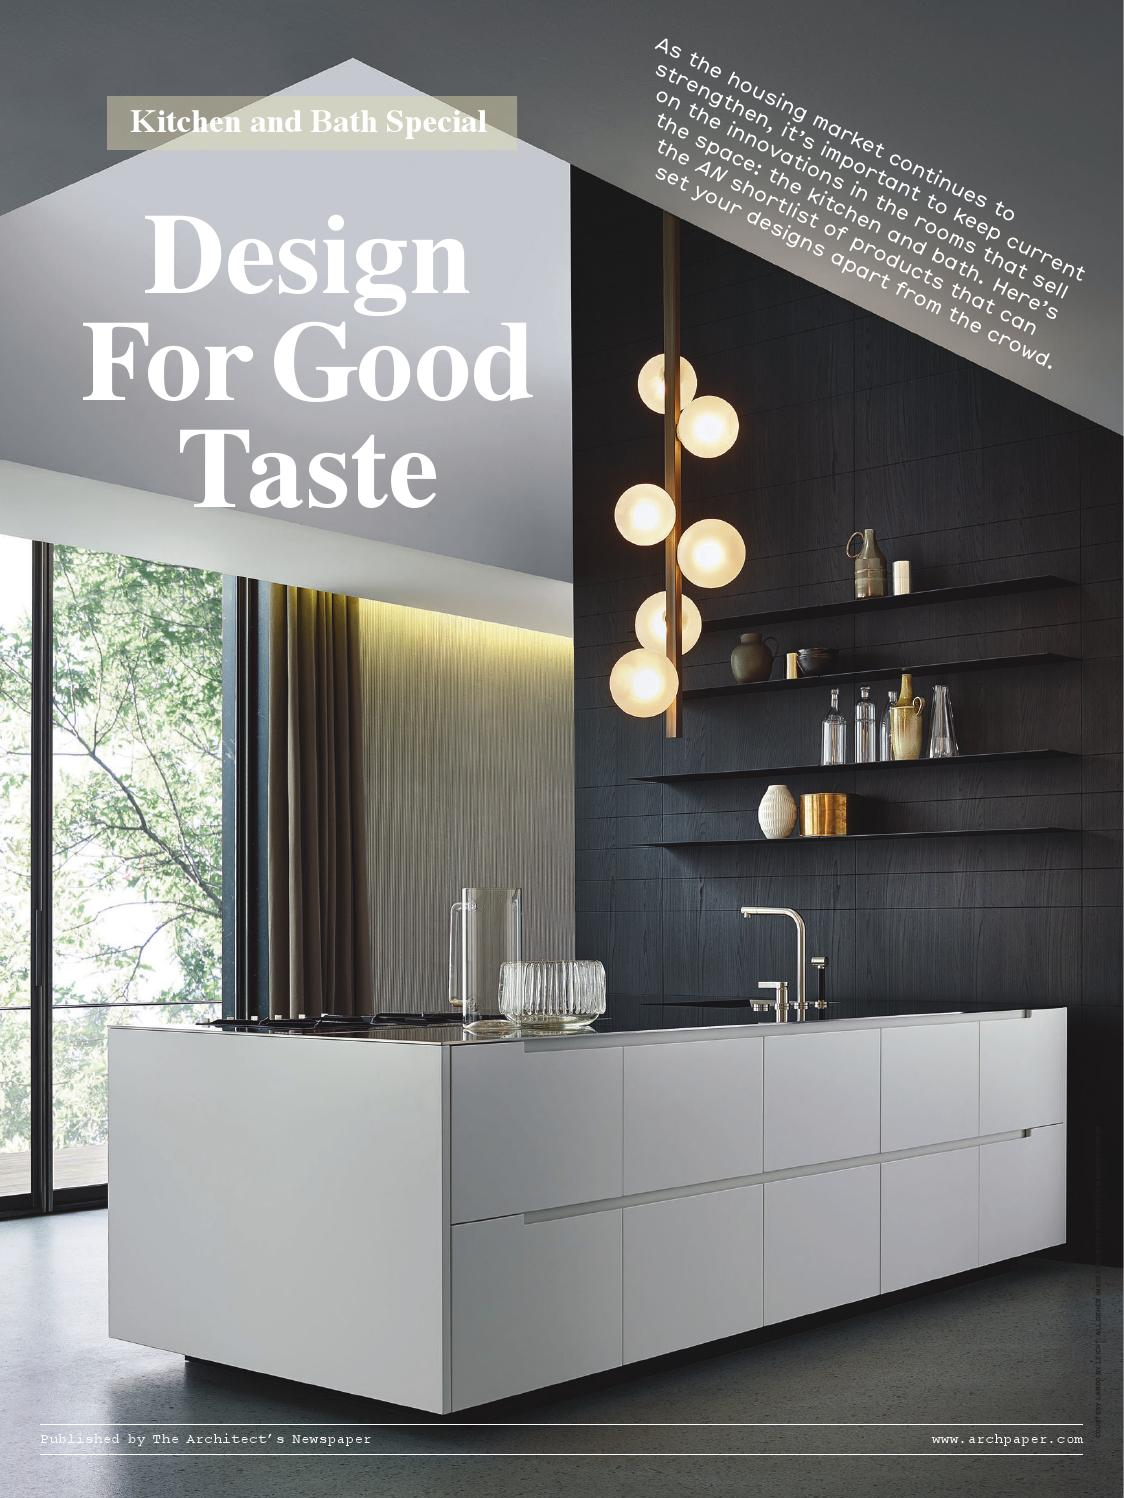 Cuisine Salinas Boffi Prix An 2015 Kitchen And Bath Supplement By The Architect S Newspaper